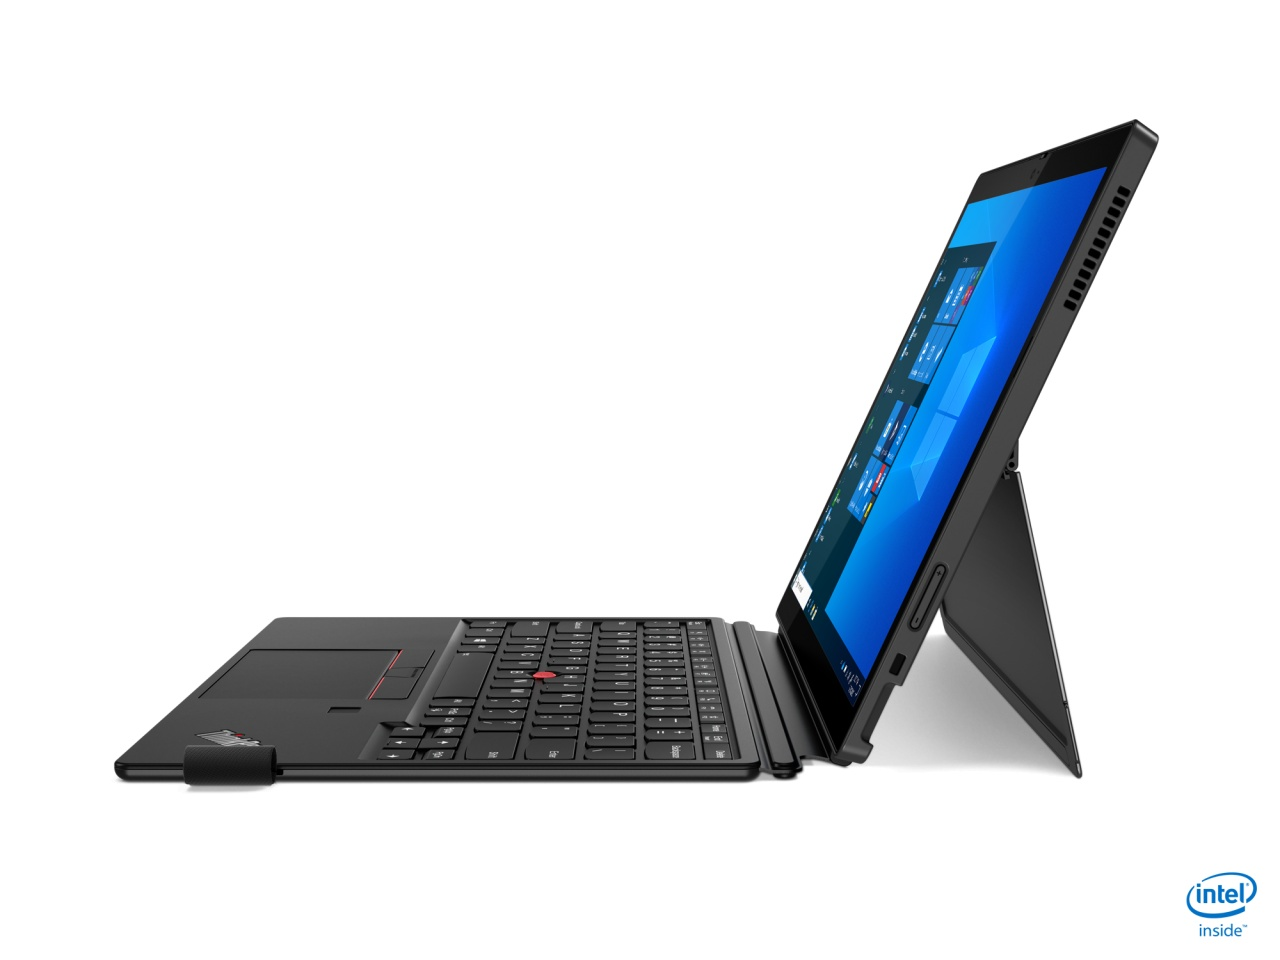 12 thinkpad x12 with kb tour left side profile